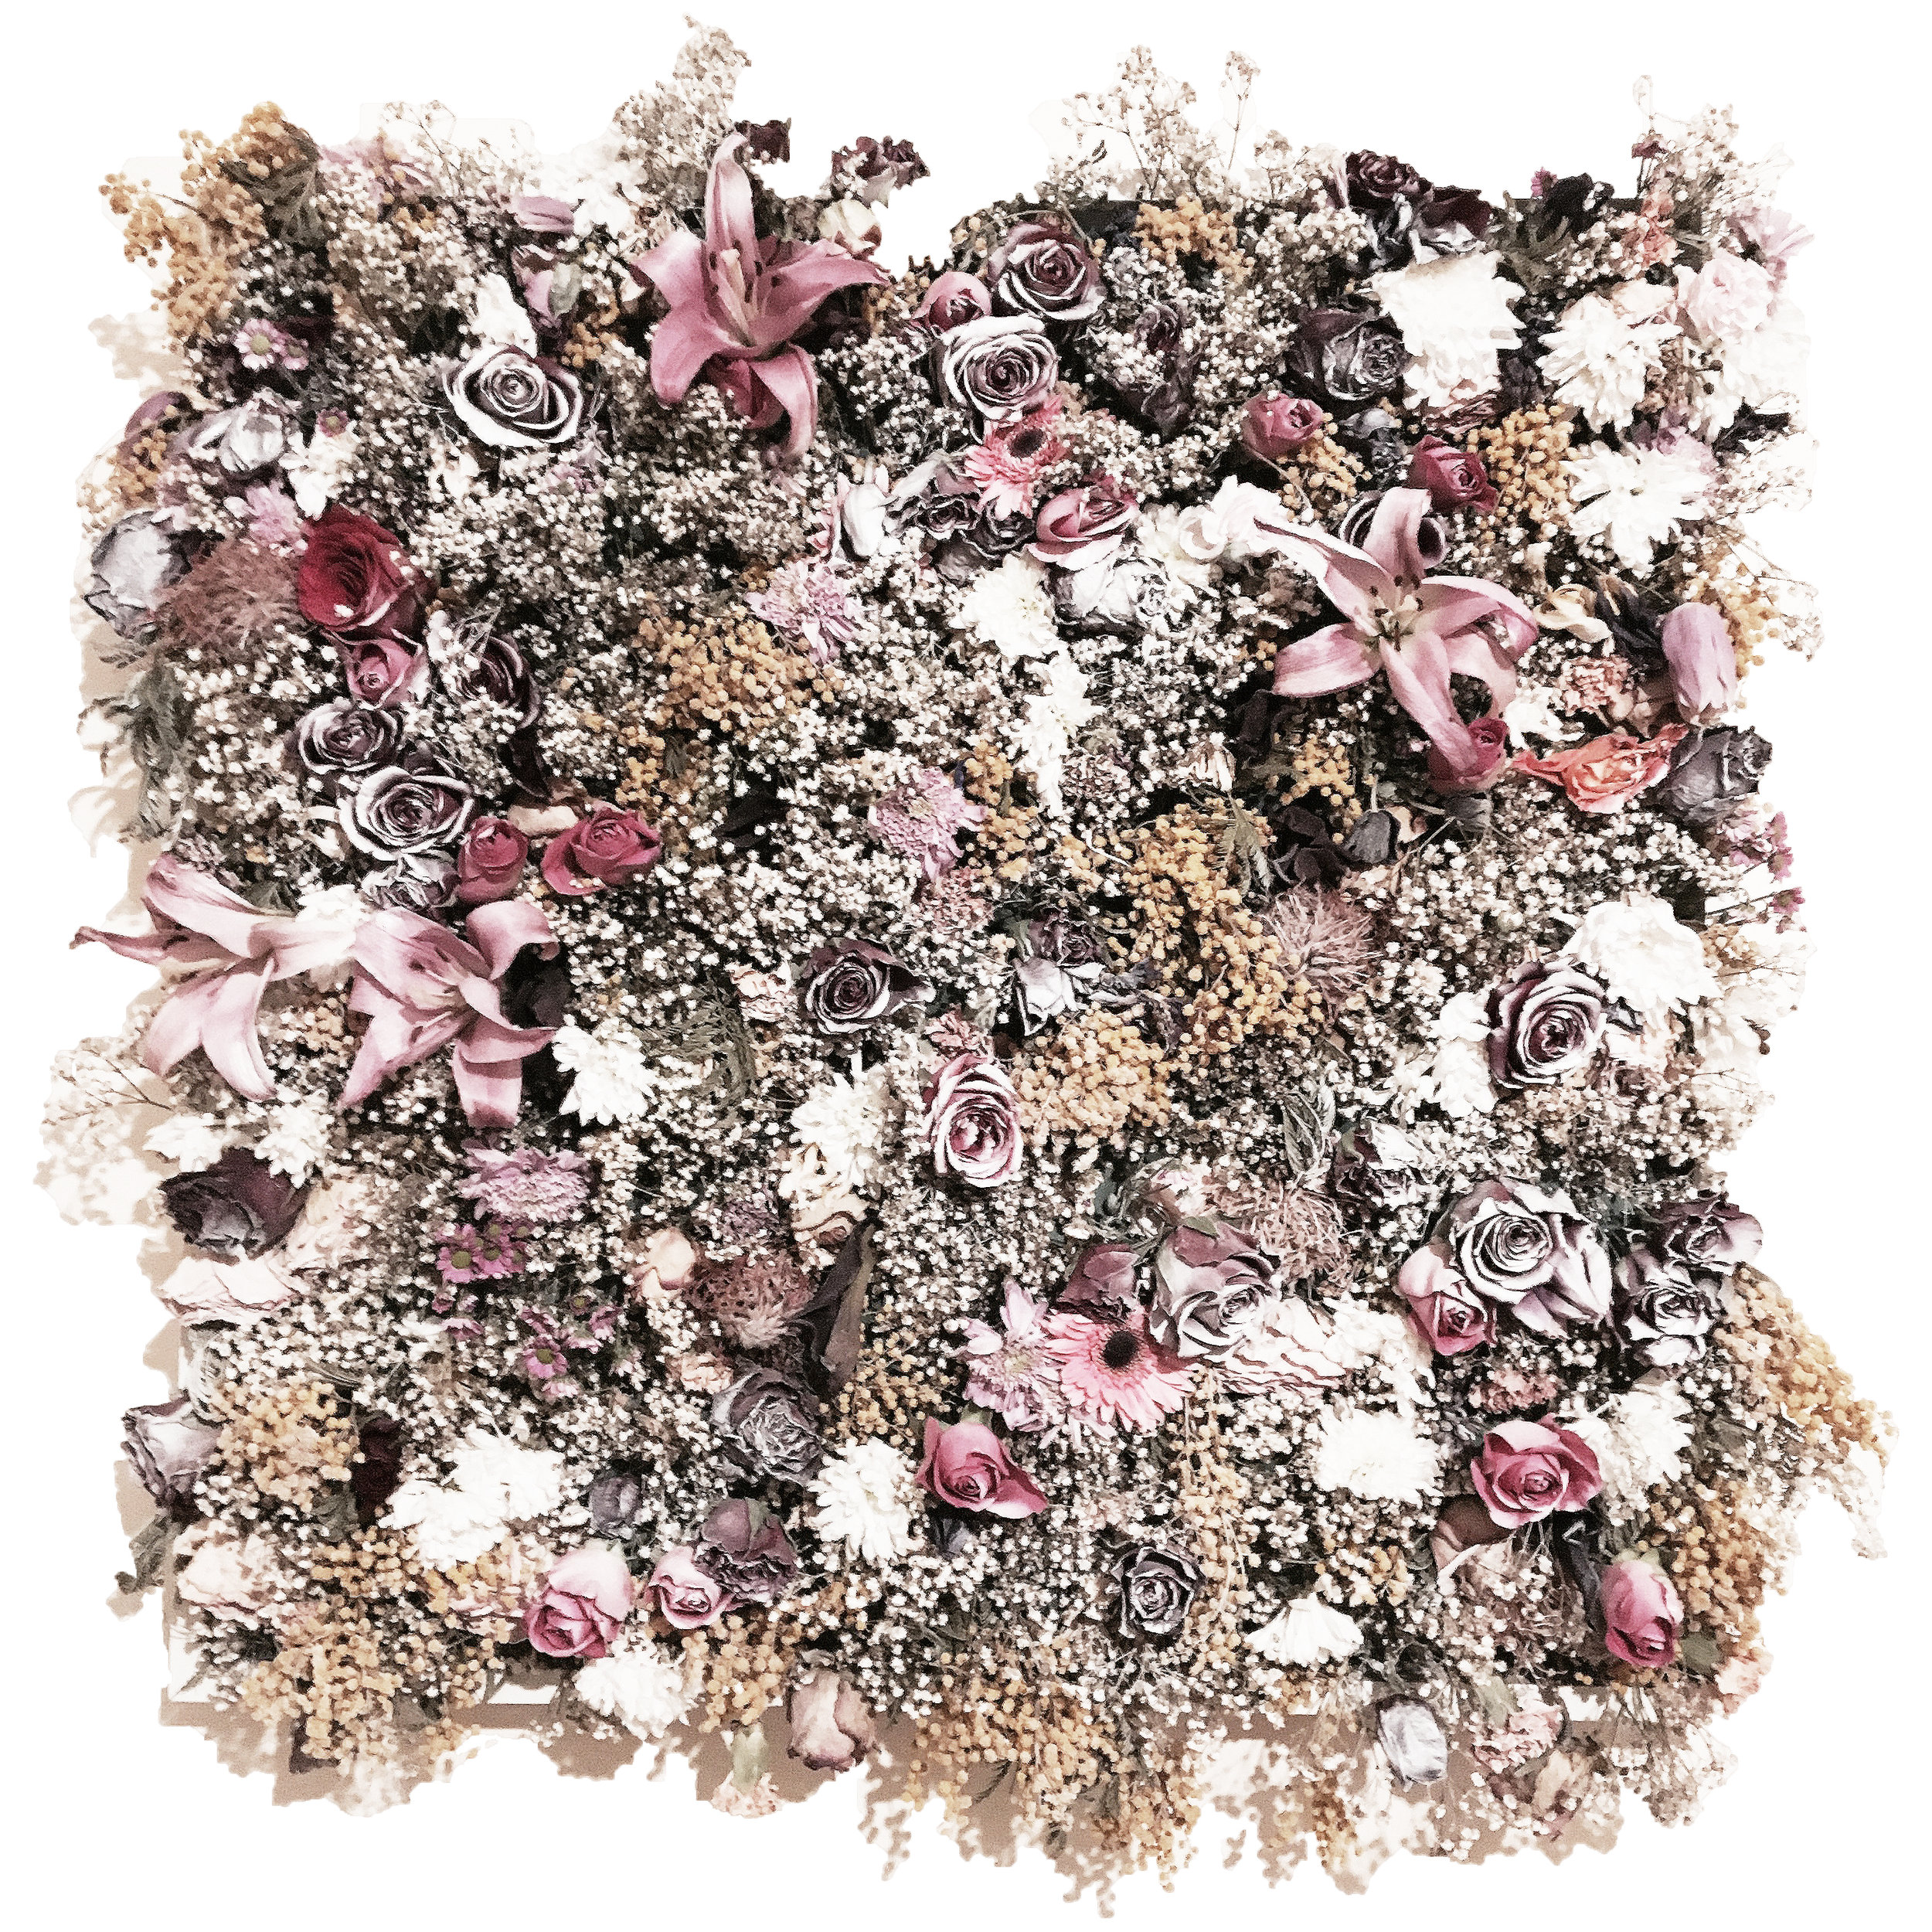 """Disfigurement in Decay"" - Dried flowers on floral foam, framed - 66 cm x 66 cm"